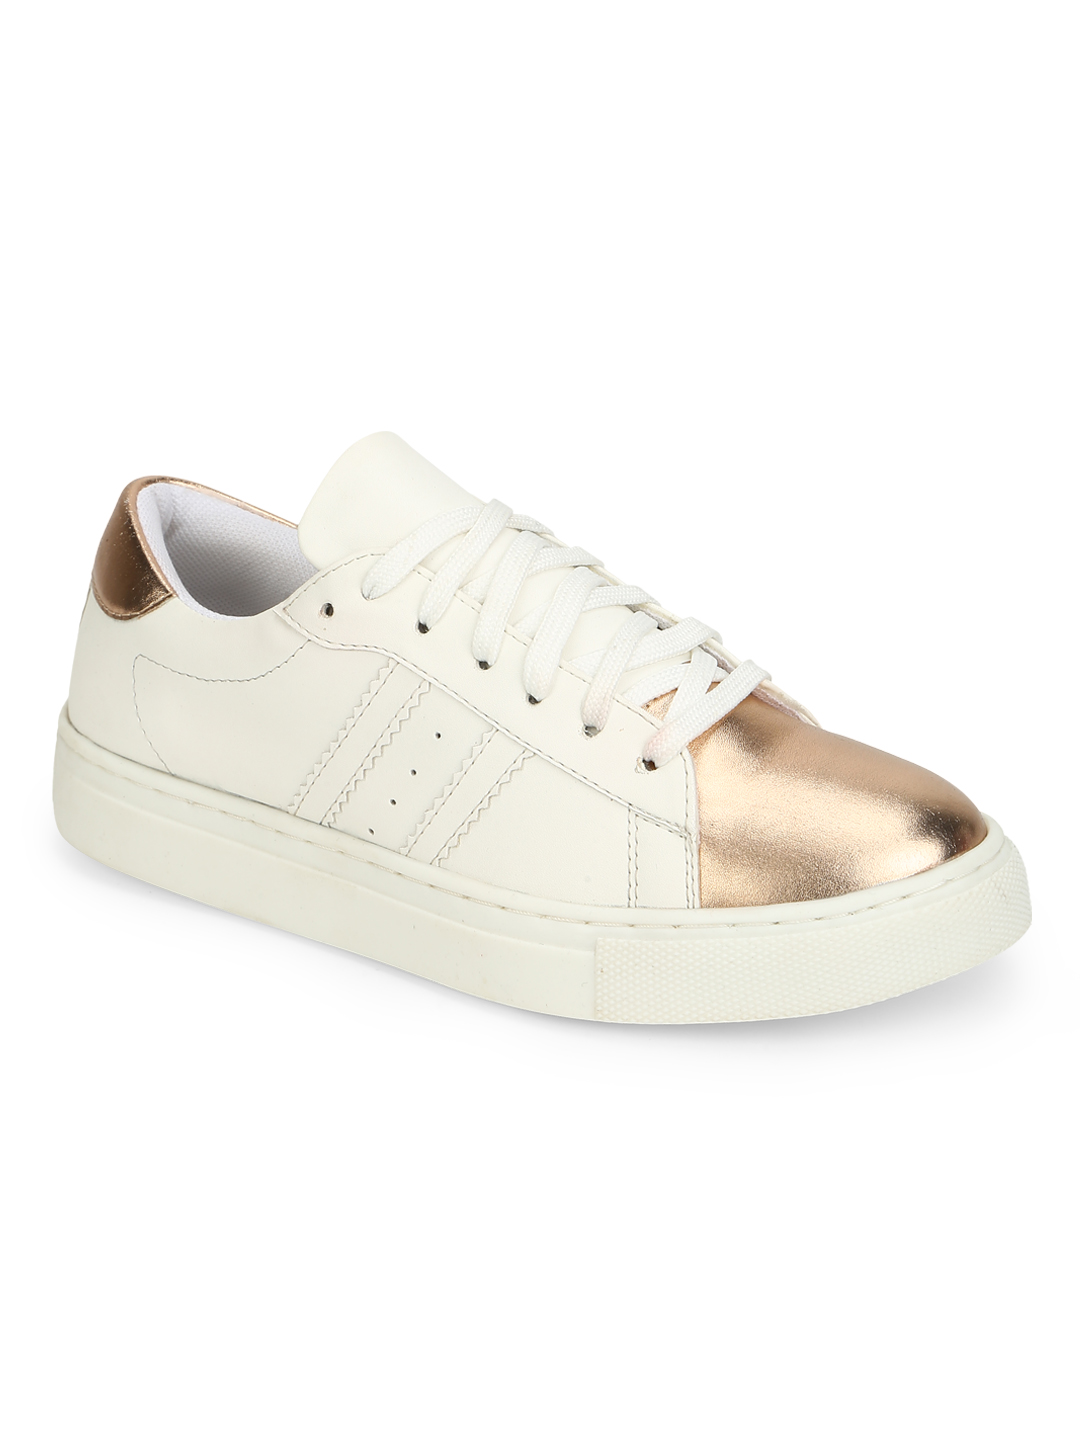 Truffle Collection | Truffle Collection White Rosegold PU Trainers